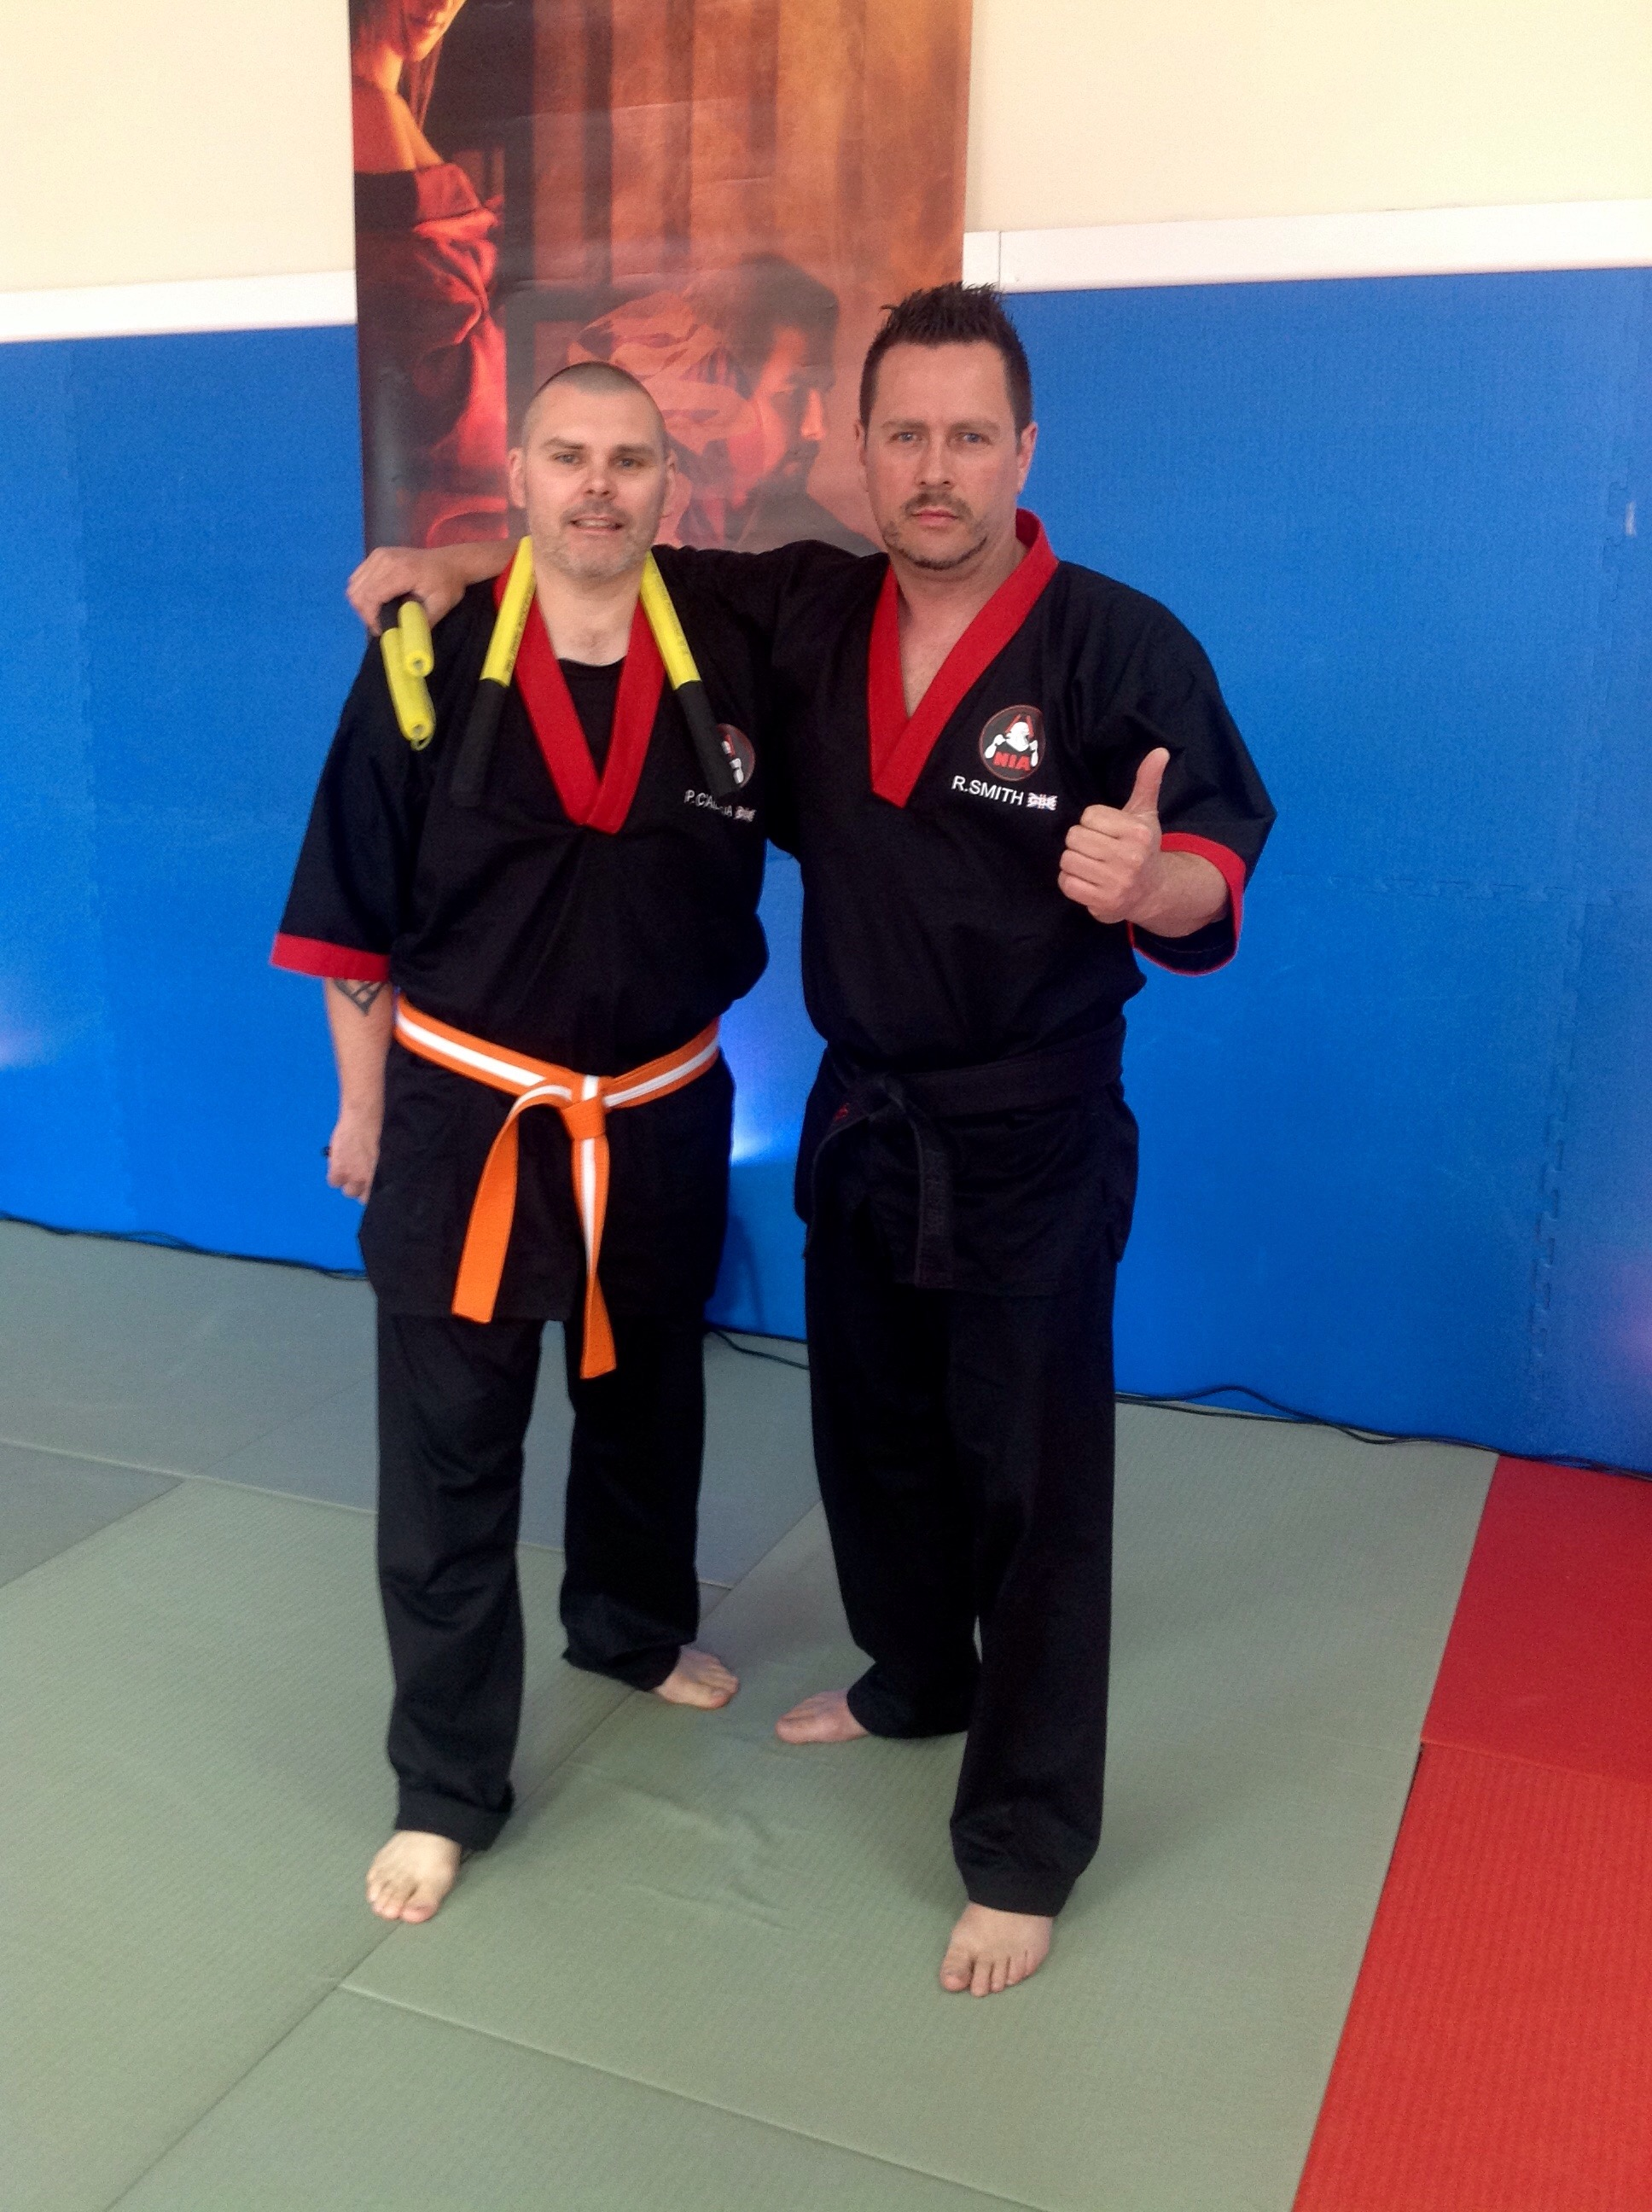 Appreciation to SNUK@Liverpool Sensei Peter C'ailceta and IBF Jack Taylor attends 1st private lesson Windermere H.Q.